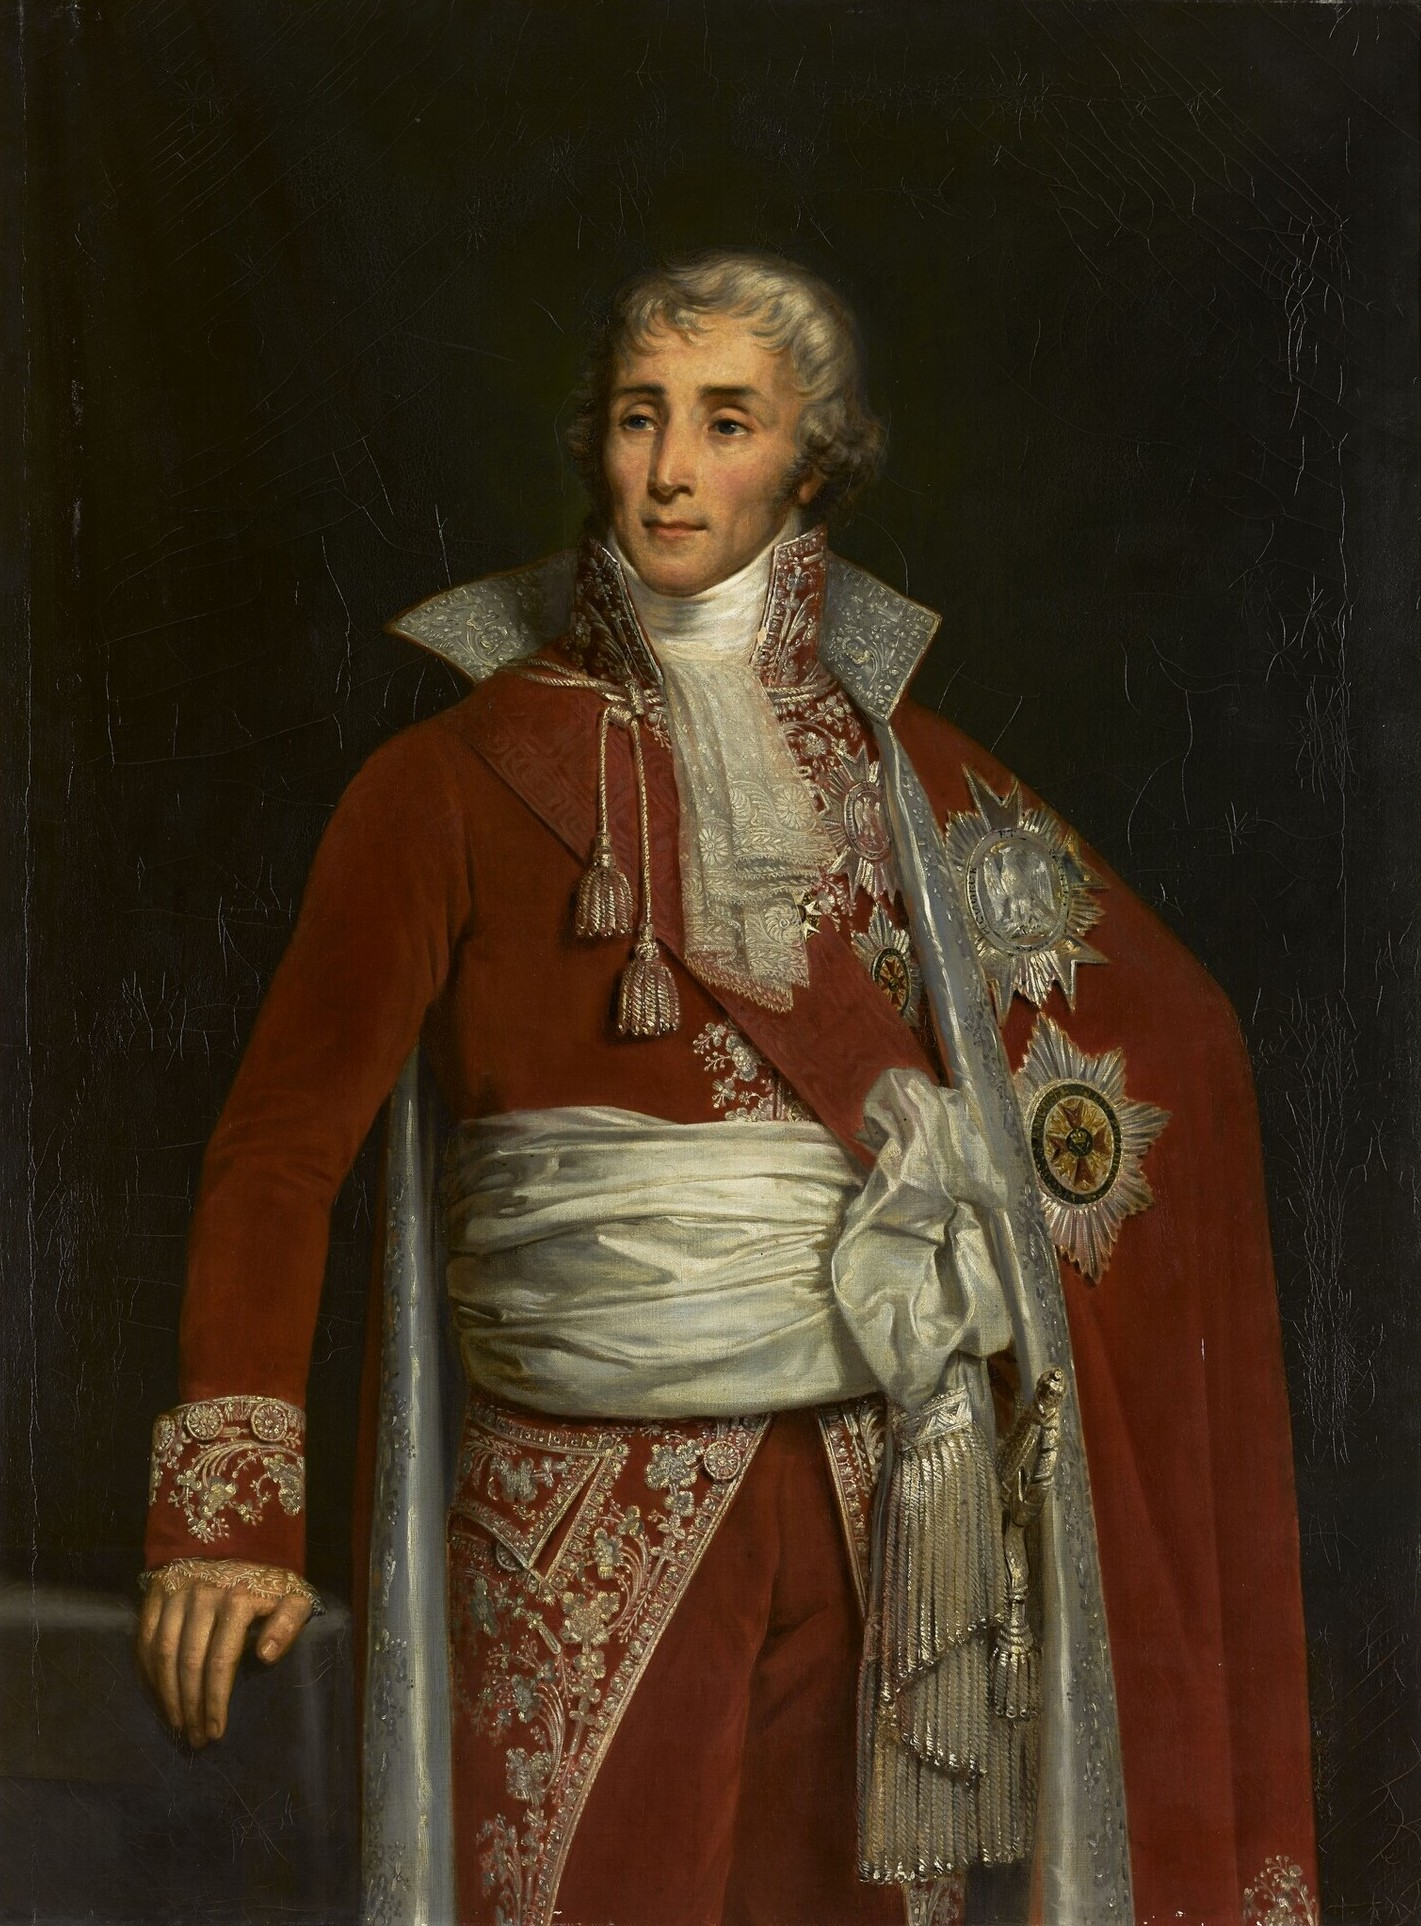 fouche_joseph_duke_of_otranto